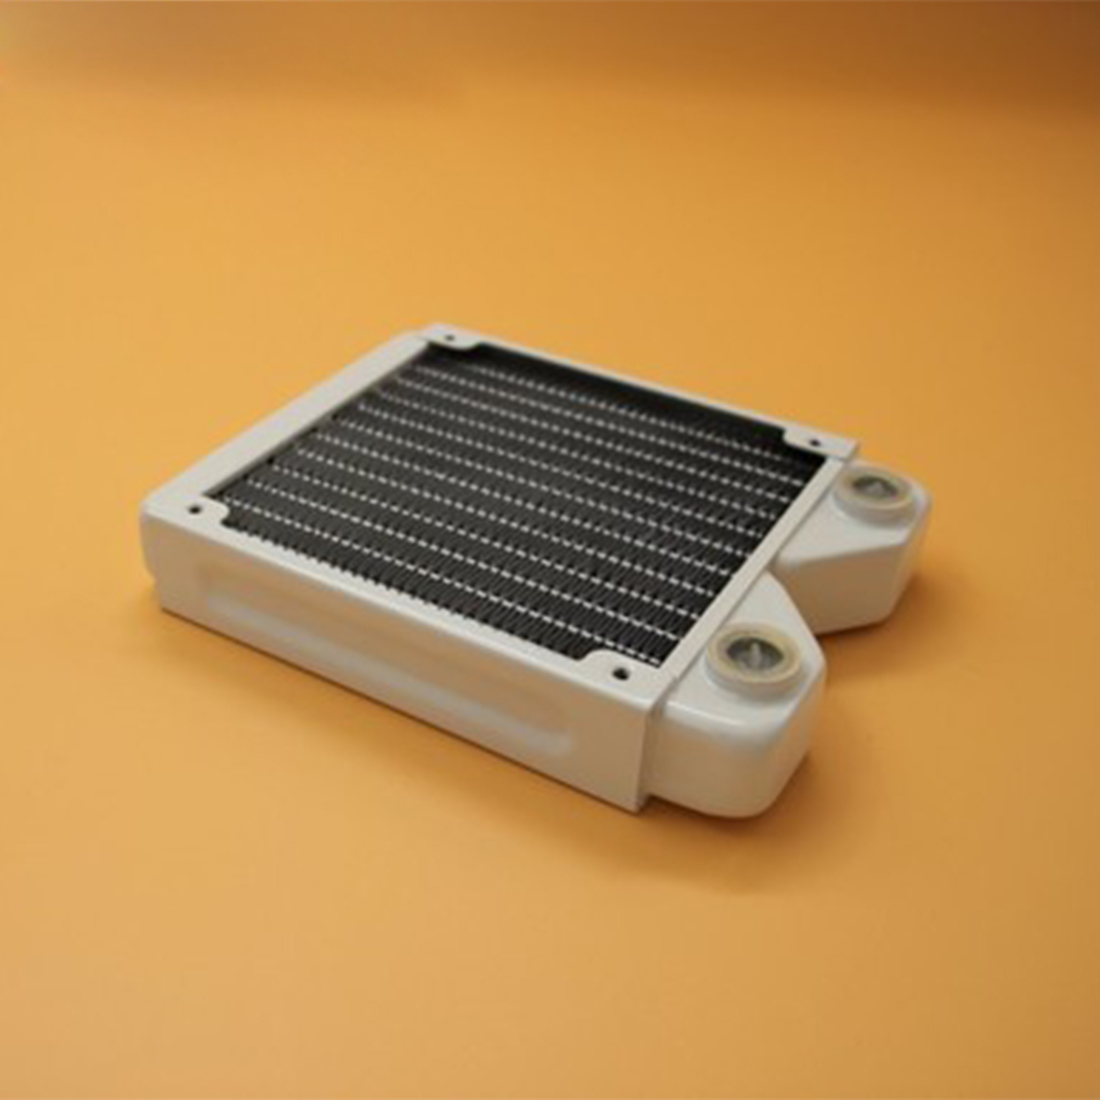 153 X 120 X 27mm Pure Copper Heat Exchanger Radiator For Computer Programming Accessories